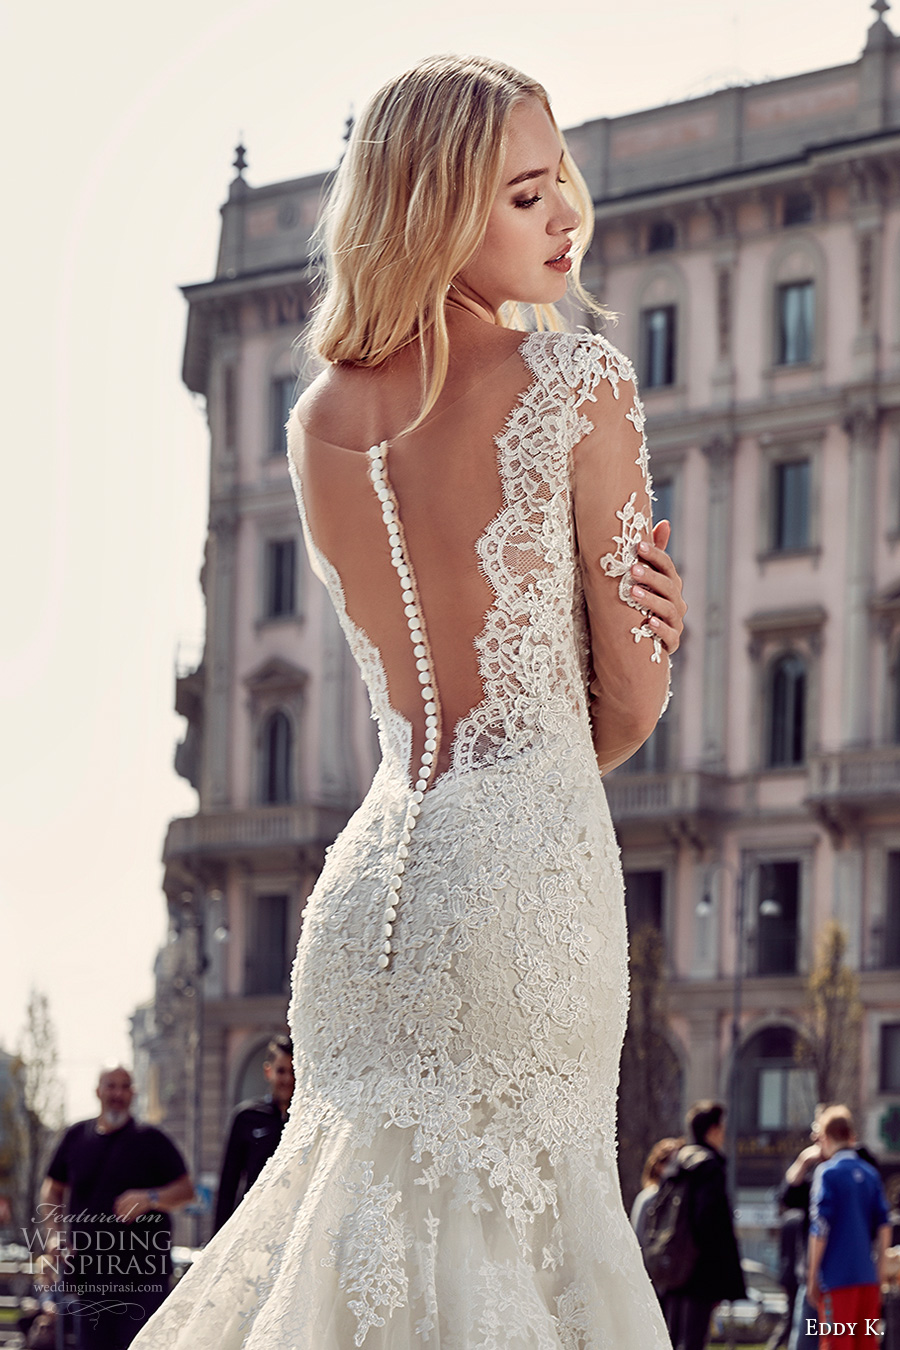 eddy k milano bridal 2017 sheer lace long sleeves deep plunging neckline heavily embellished bodice elegant mermaid wedding dress low back chapel train (md218) zbv